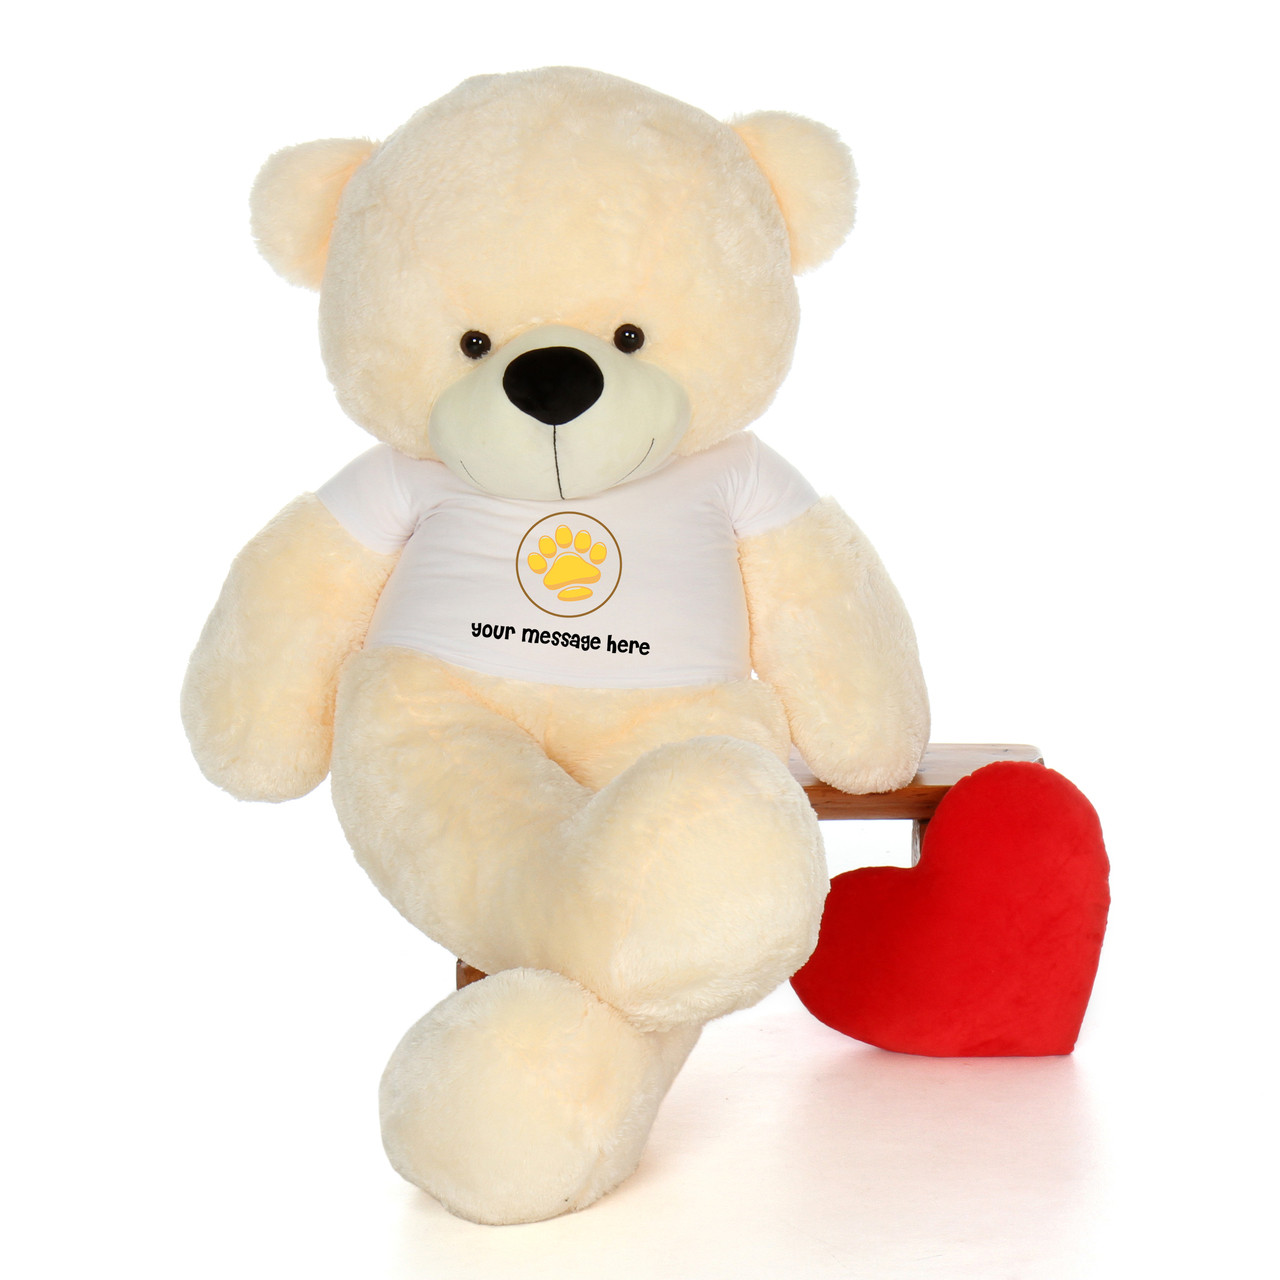 6ft life size personalized teddy bears customize message and your